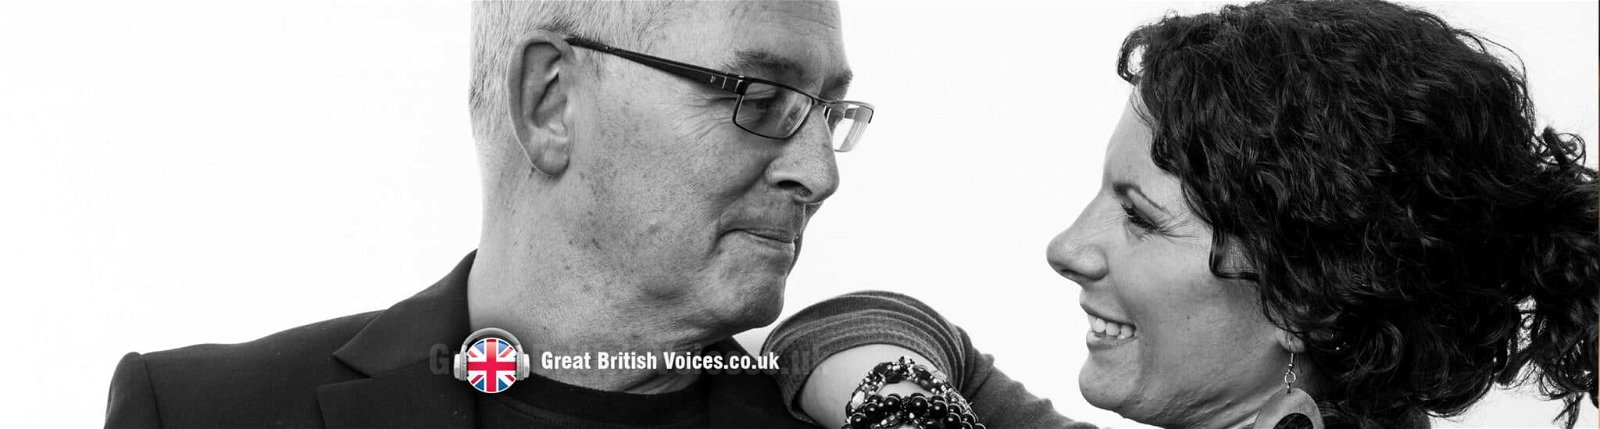 Phil Sayer Elinor Hamilton Voiceovers at Great British Voices